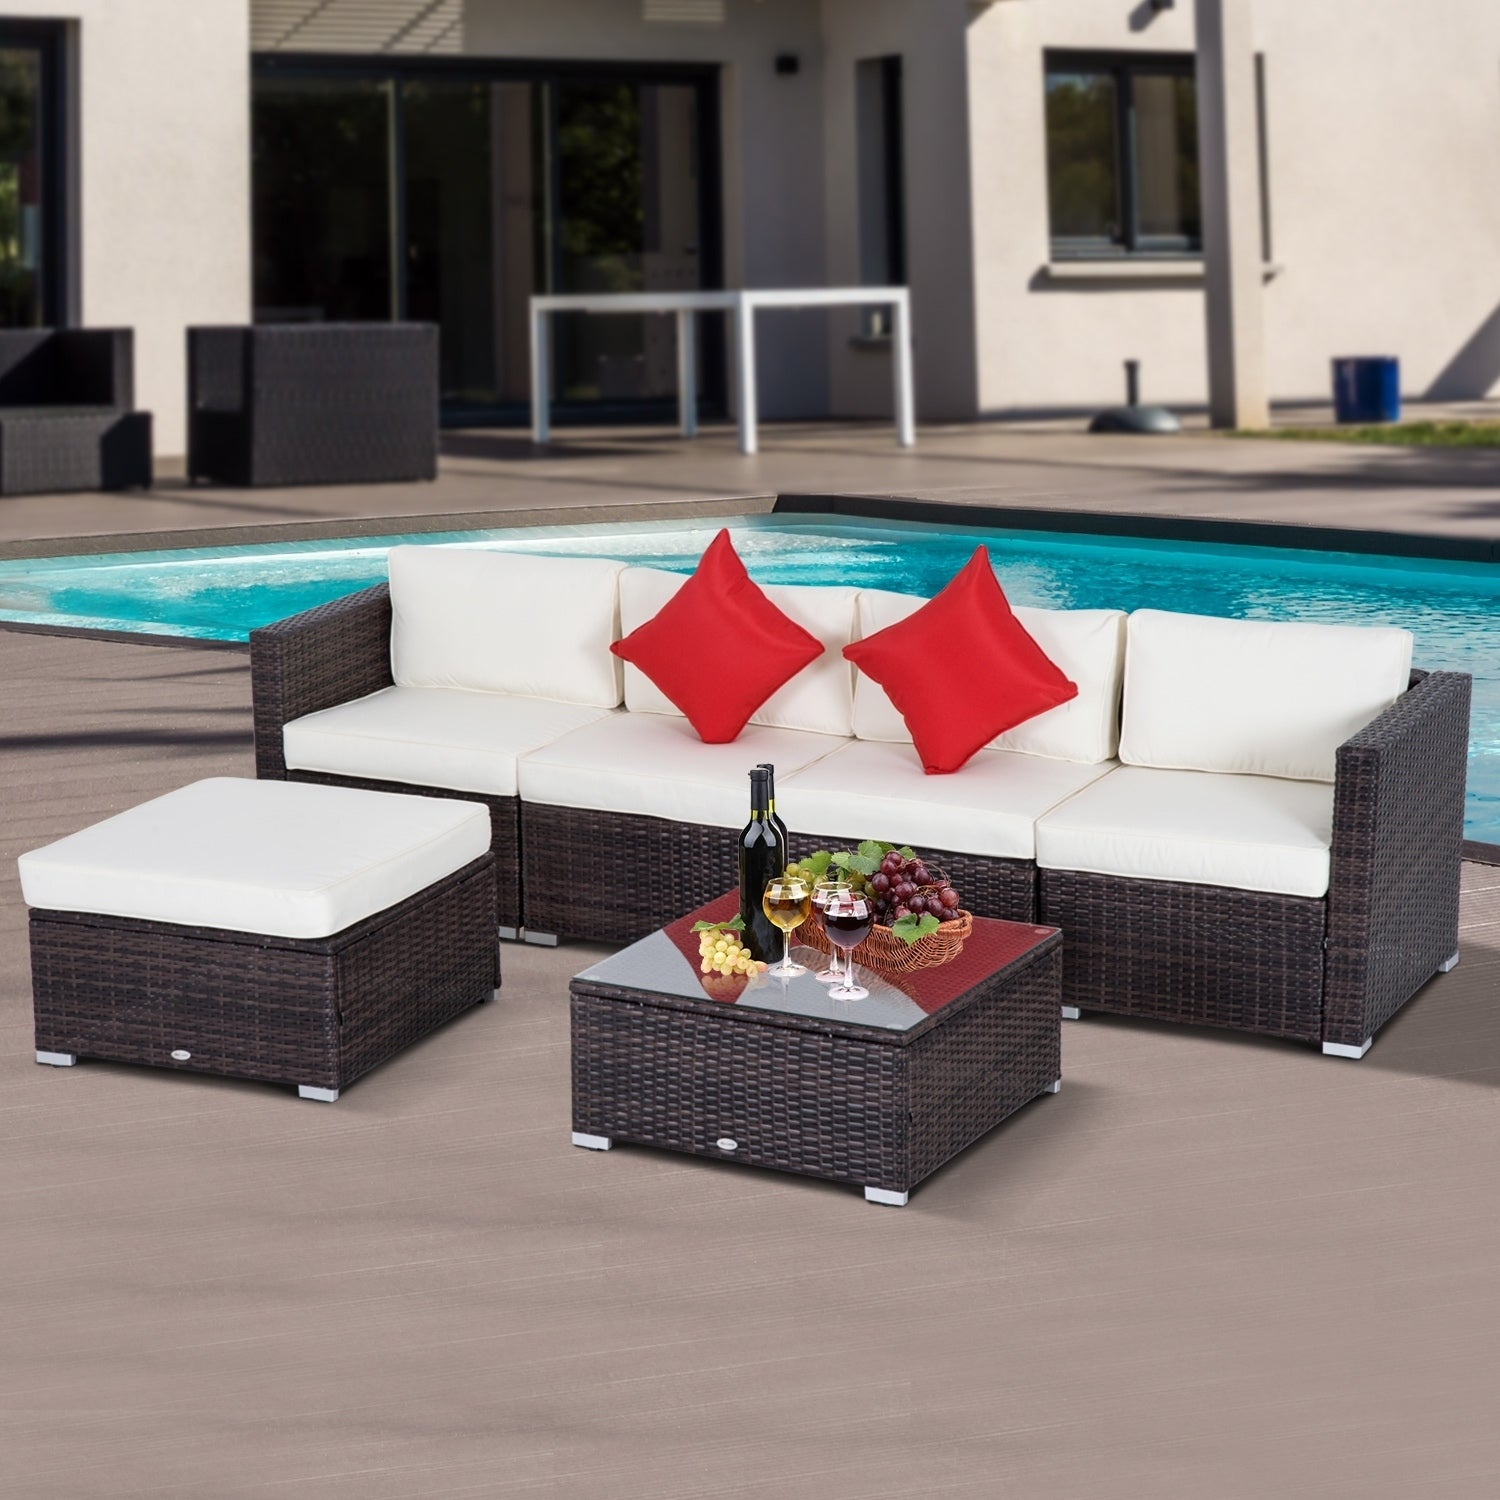 Outsunny Rattan Garden Wicker 6-piece Sofa Sectional Pati...